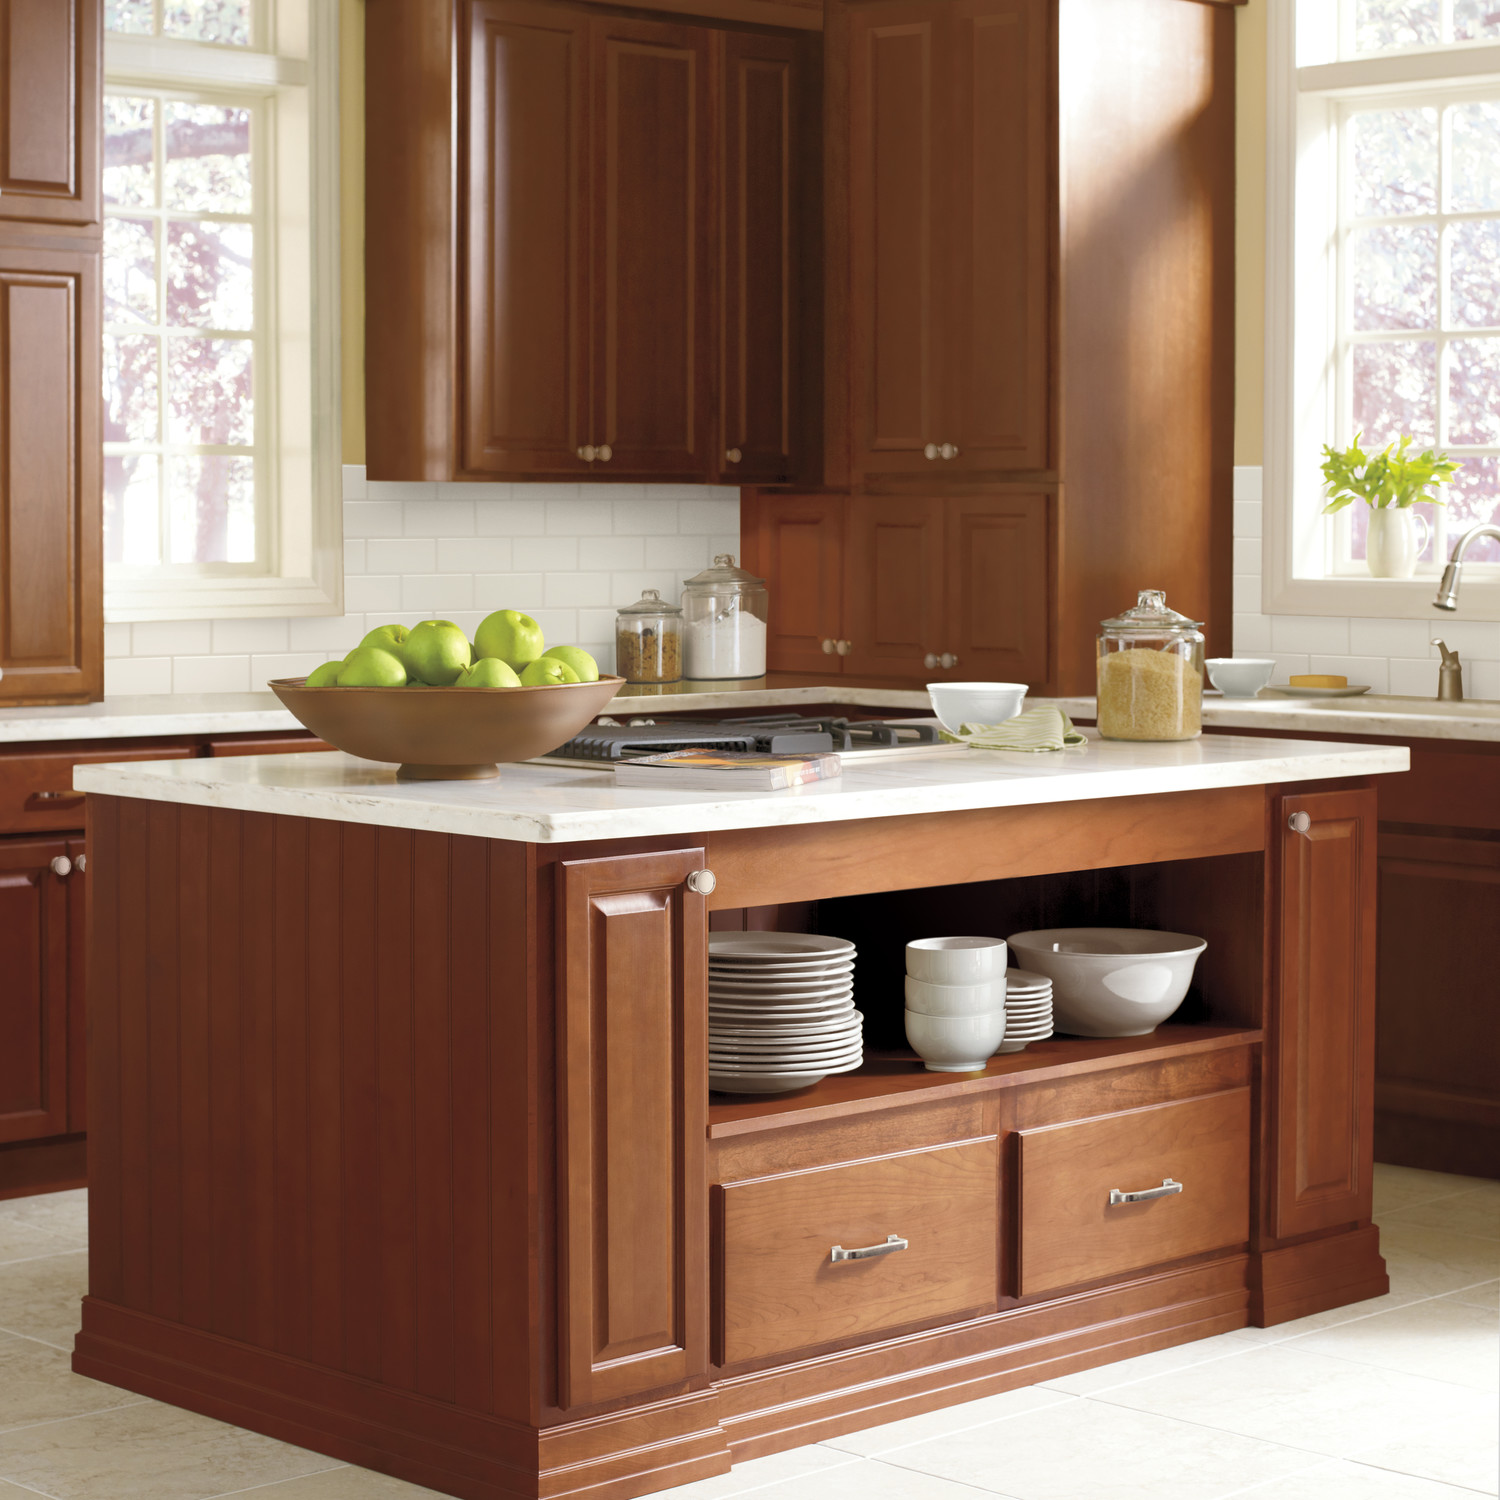 Top Rated Kitchen Design App Choosing Kitchen Cabinets 14 Things You Need To Know Martha Stewart